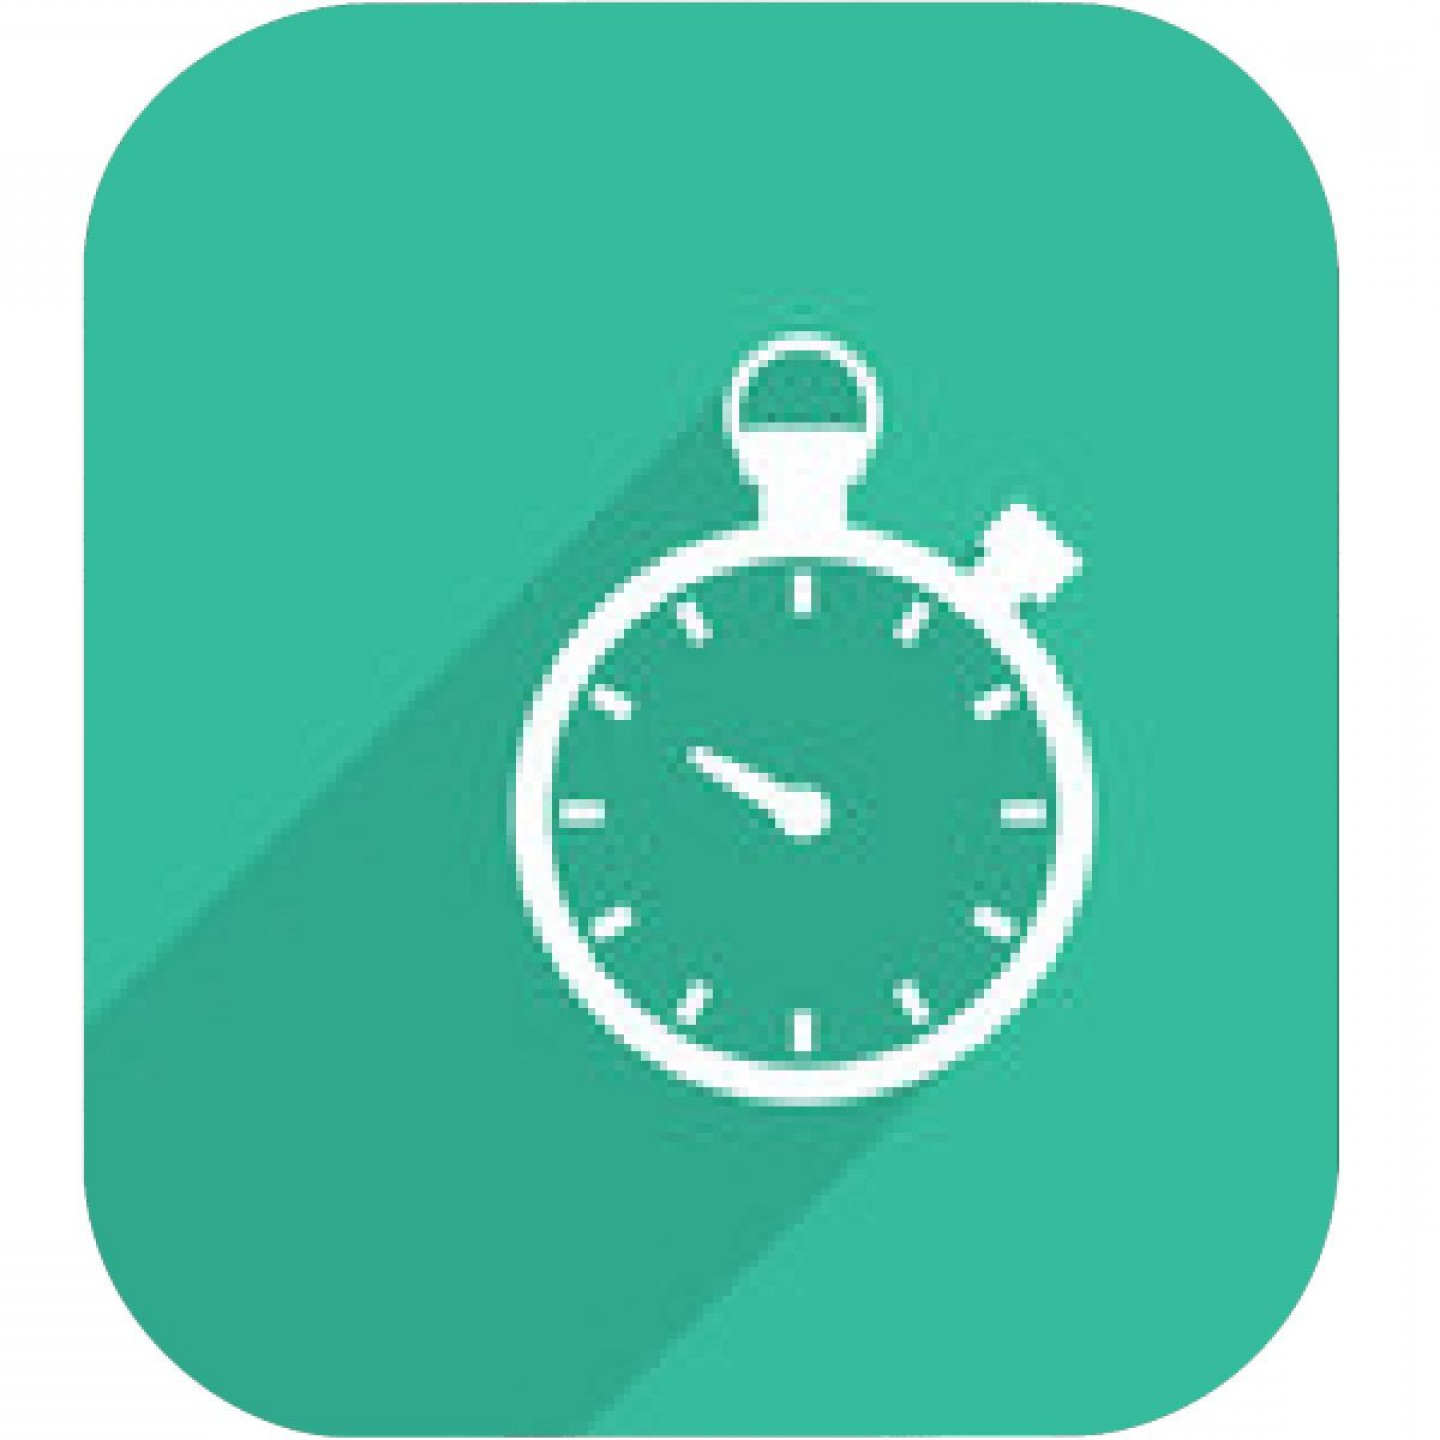 Stop Watch Vector Ai File: Set Of Time Icons Clock Face Without Numbers Vector